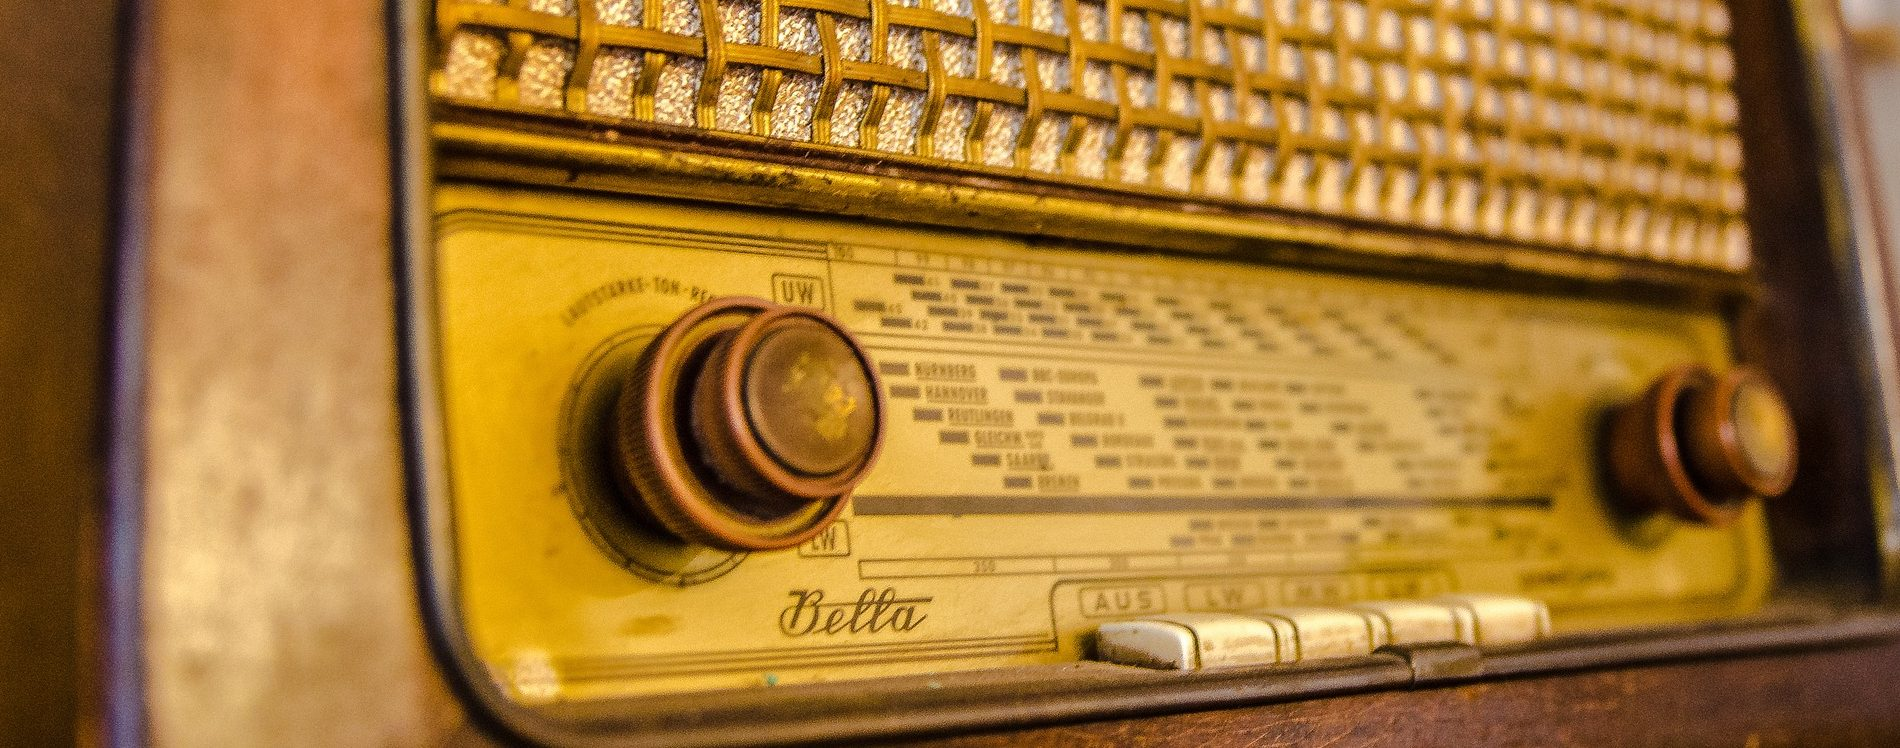 Pixabay - Free Clip Art - Use For Podcasts - Antique Radio